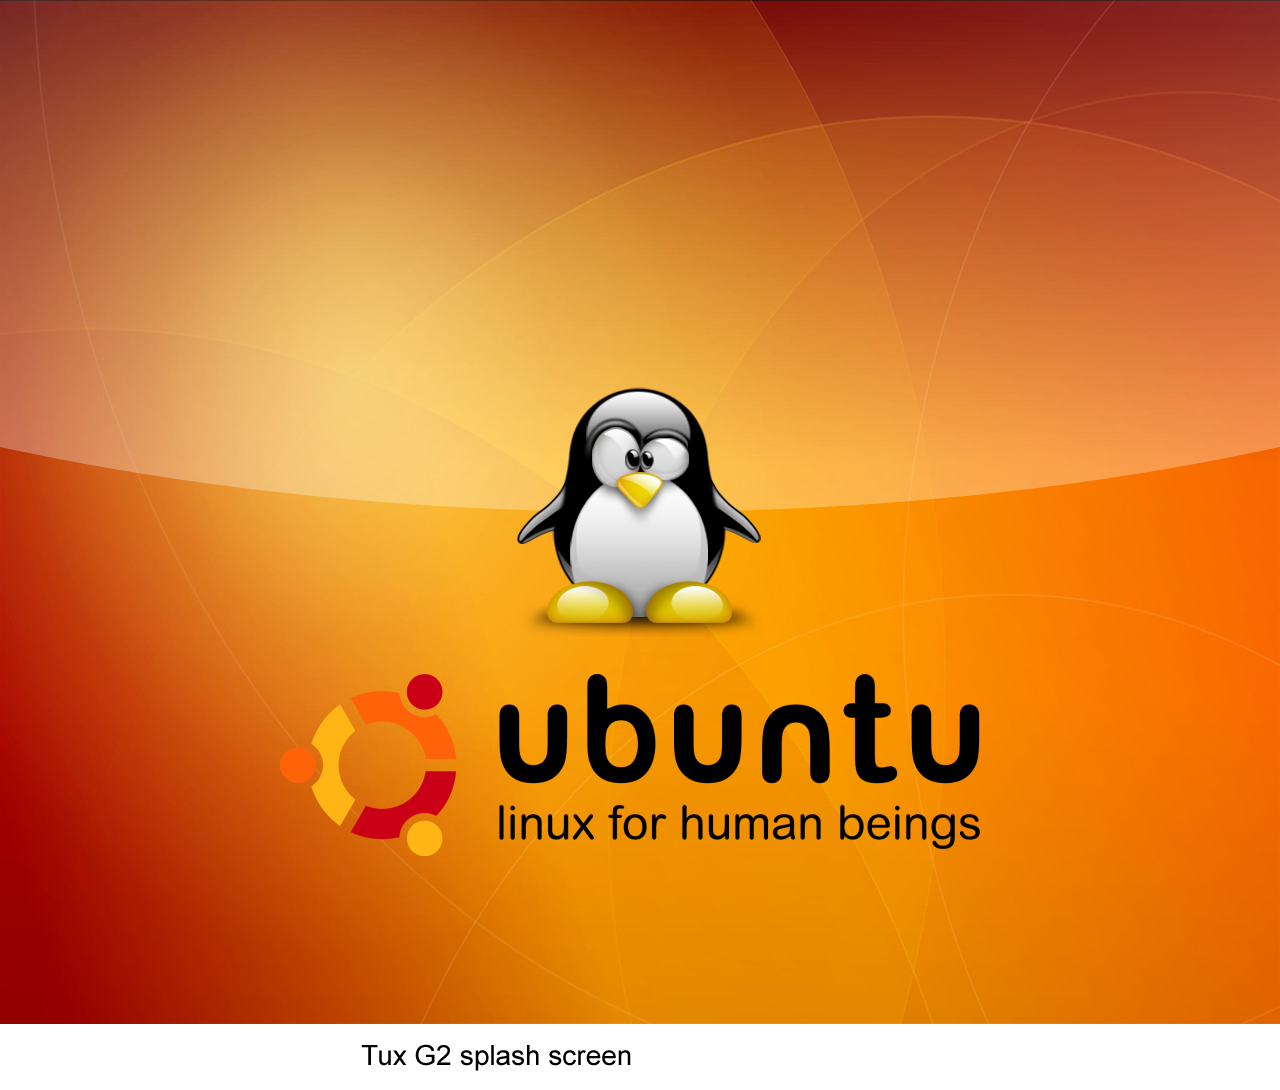 how to download a ubuntu image on ubuntu server